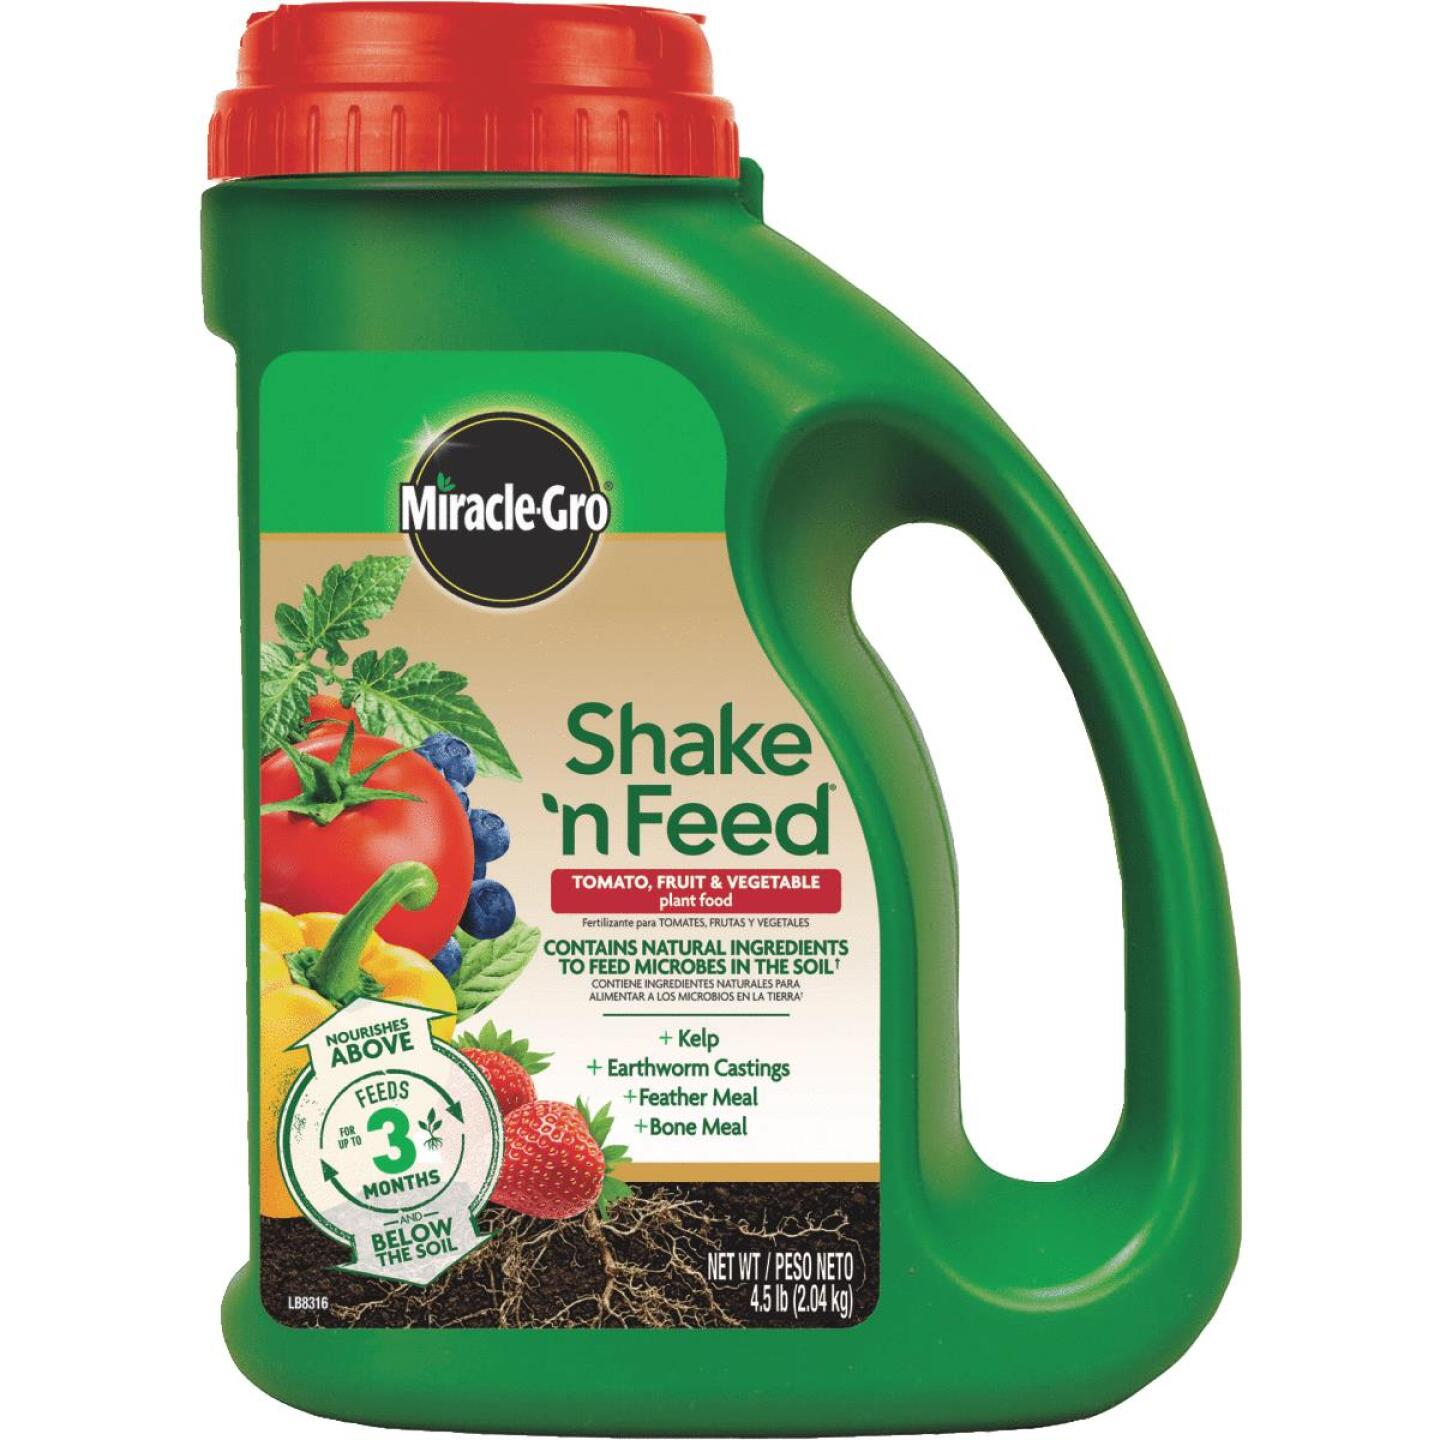 Miracle-Gro Shake N' Feed 4.5 Lb. 9-4-12 Tomato, Fruits & Vegetables Plus Calcium Dry Plant Food Image 1